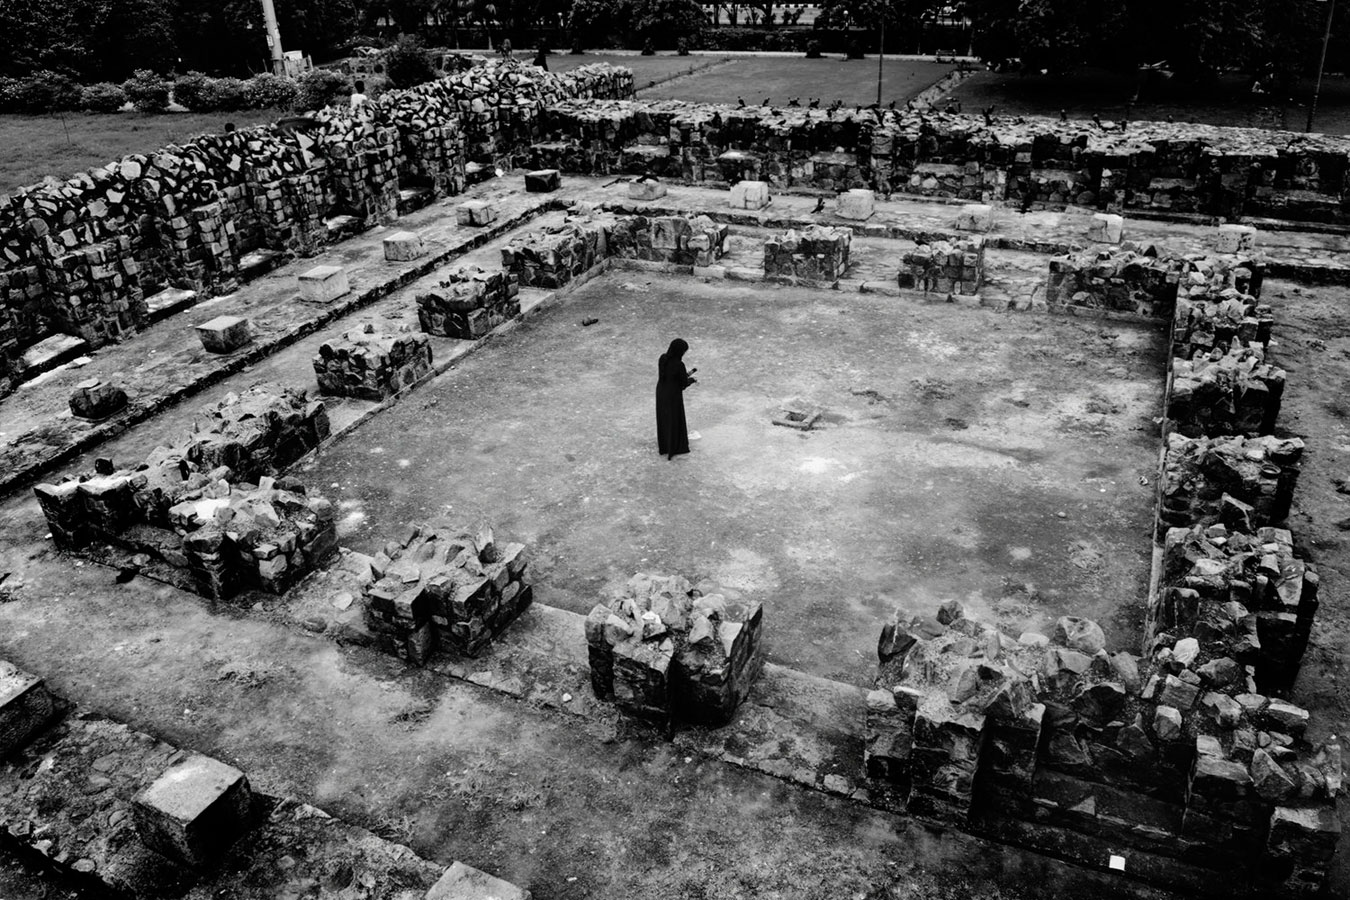 © Taha Ahmad, Emerging Vision, The Documentary Project Fund